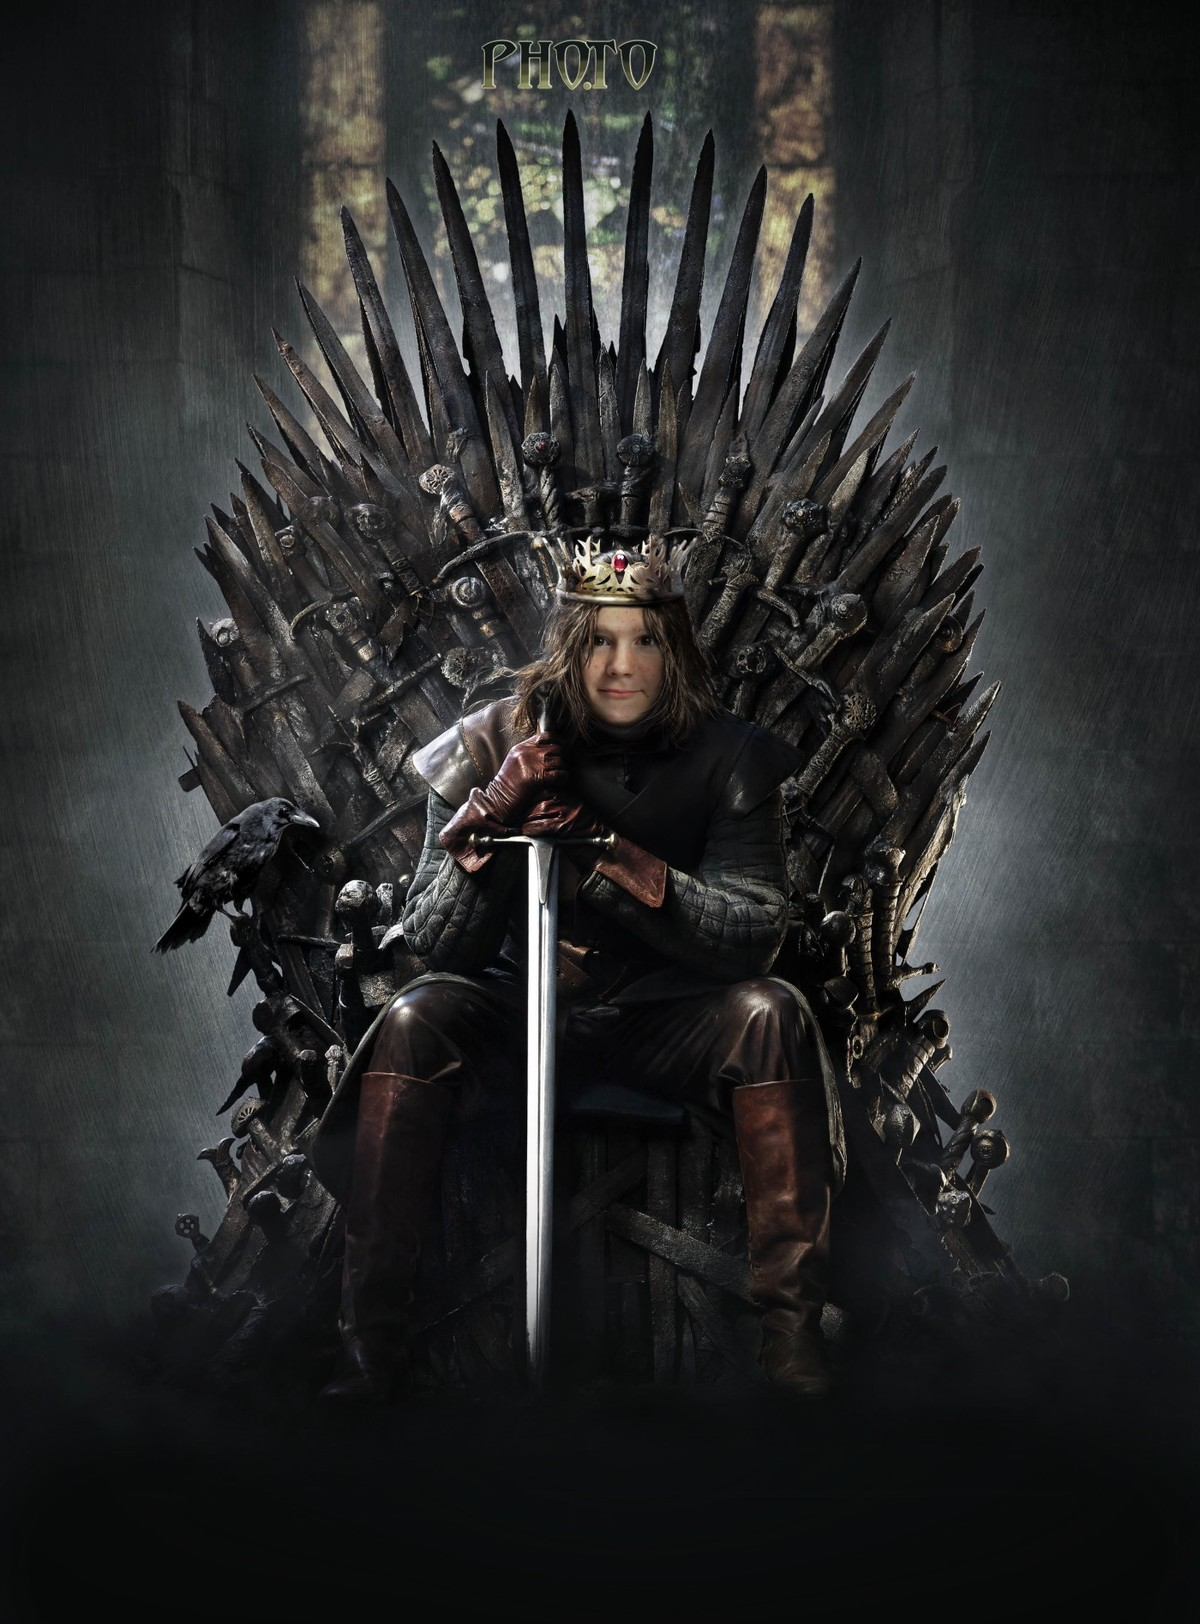 sit on the iron throne with game of thrones face montage